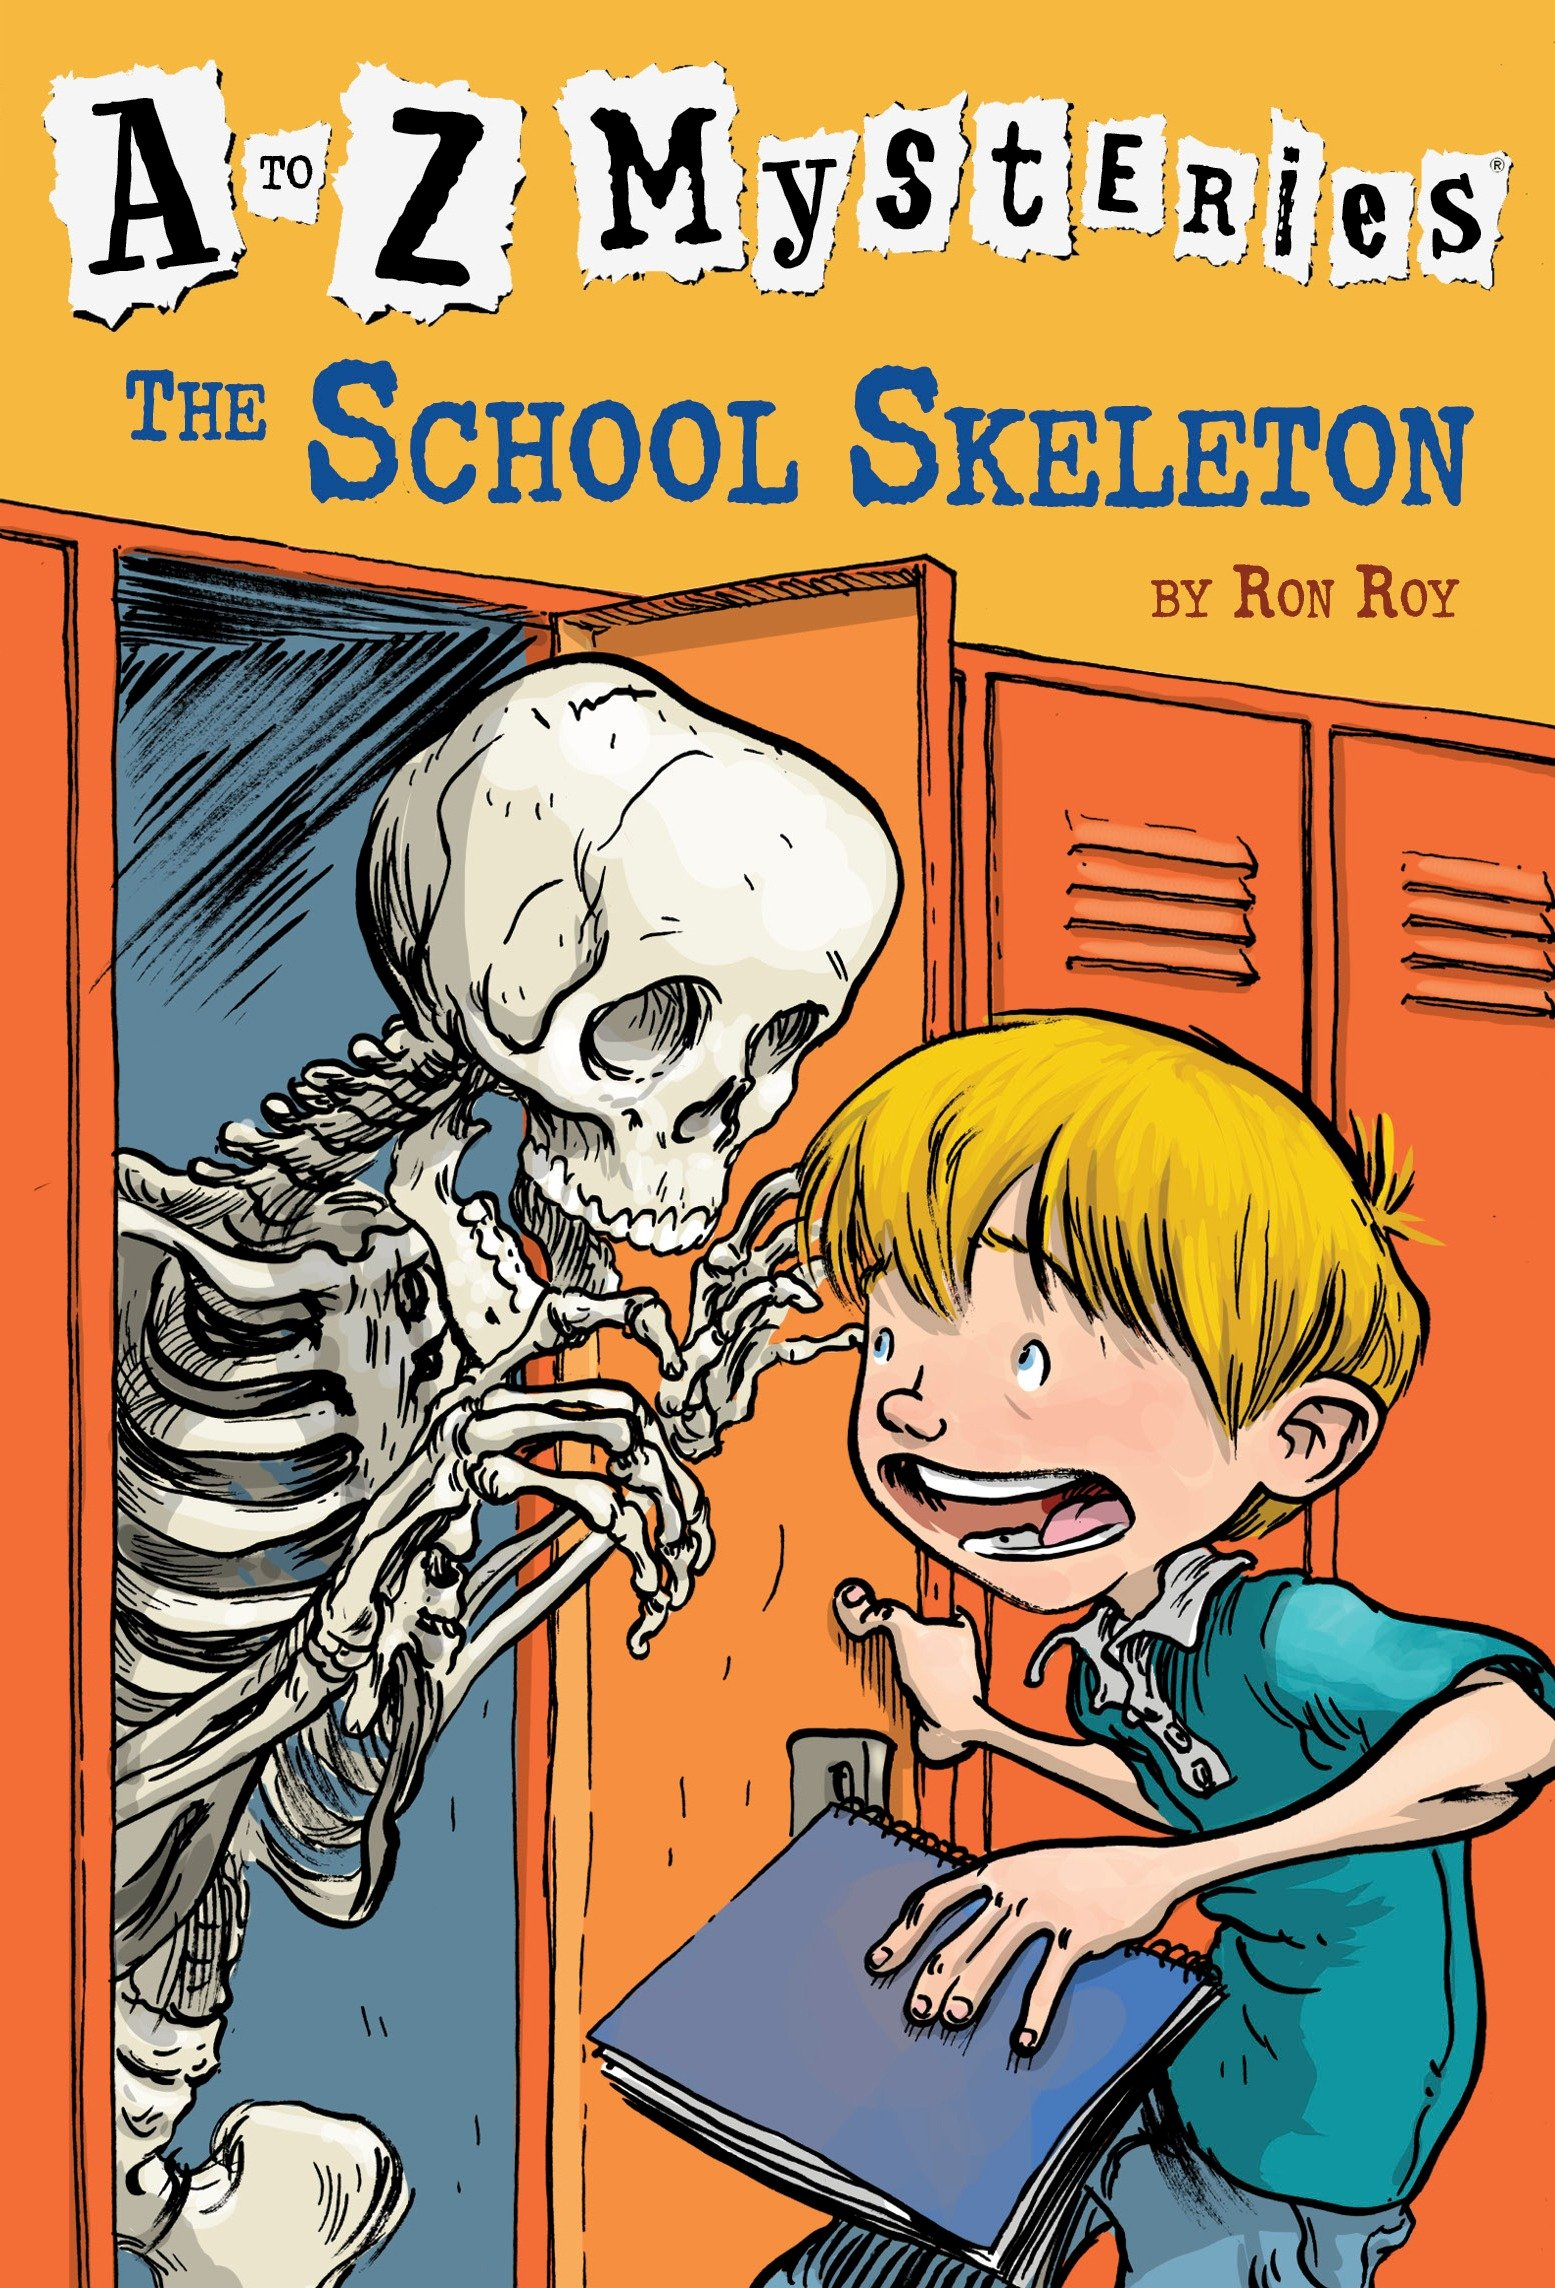 The School Skeleton cover image